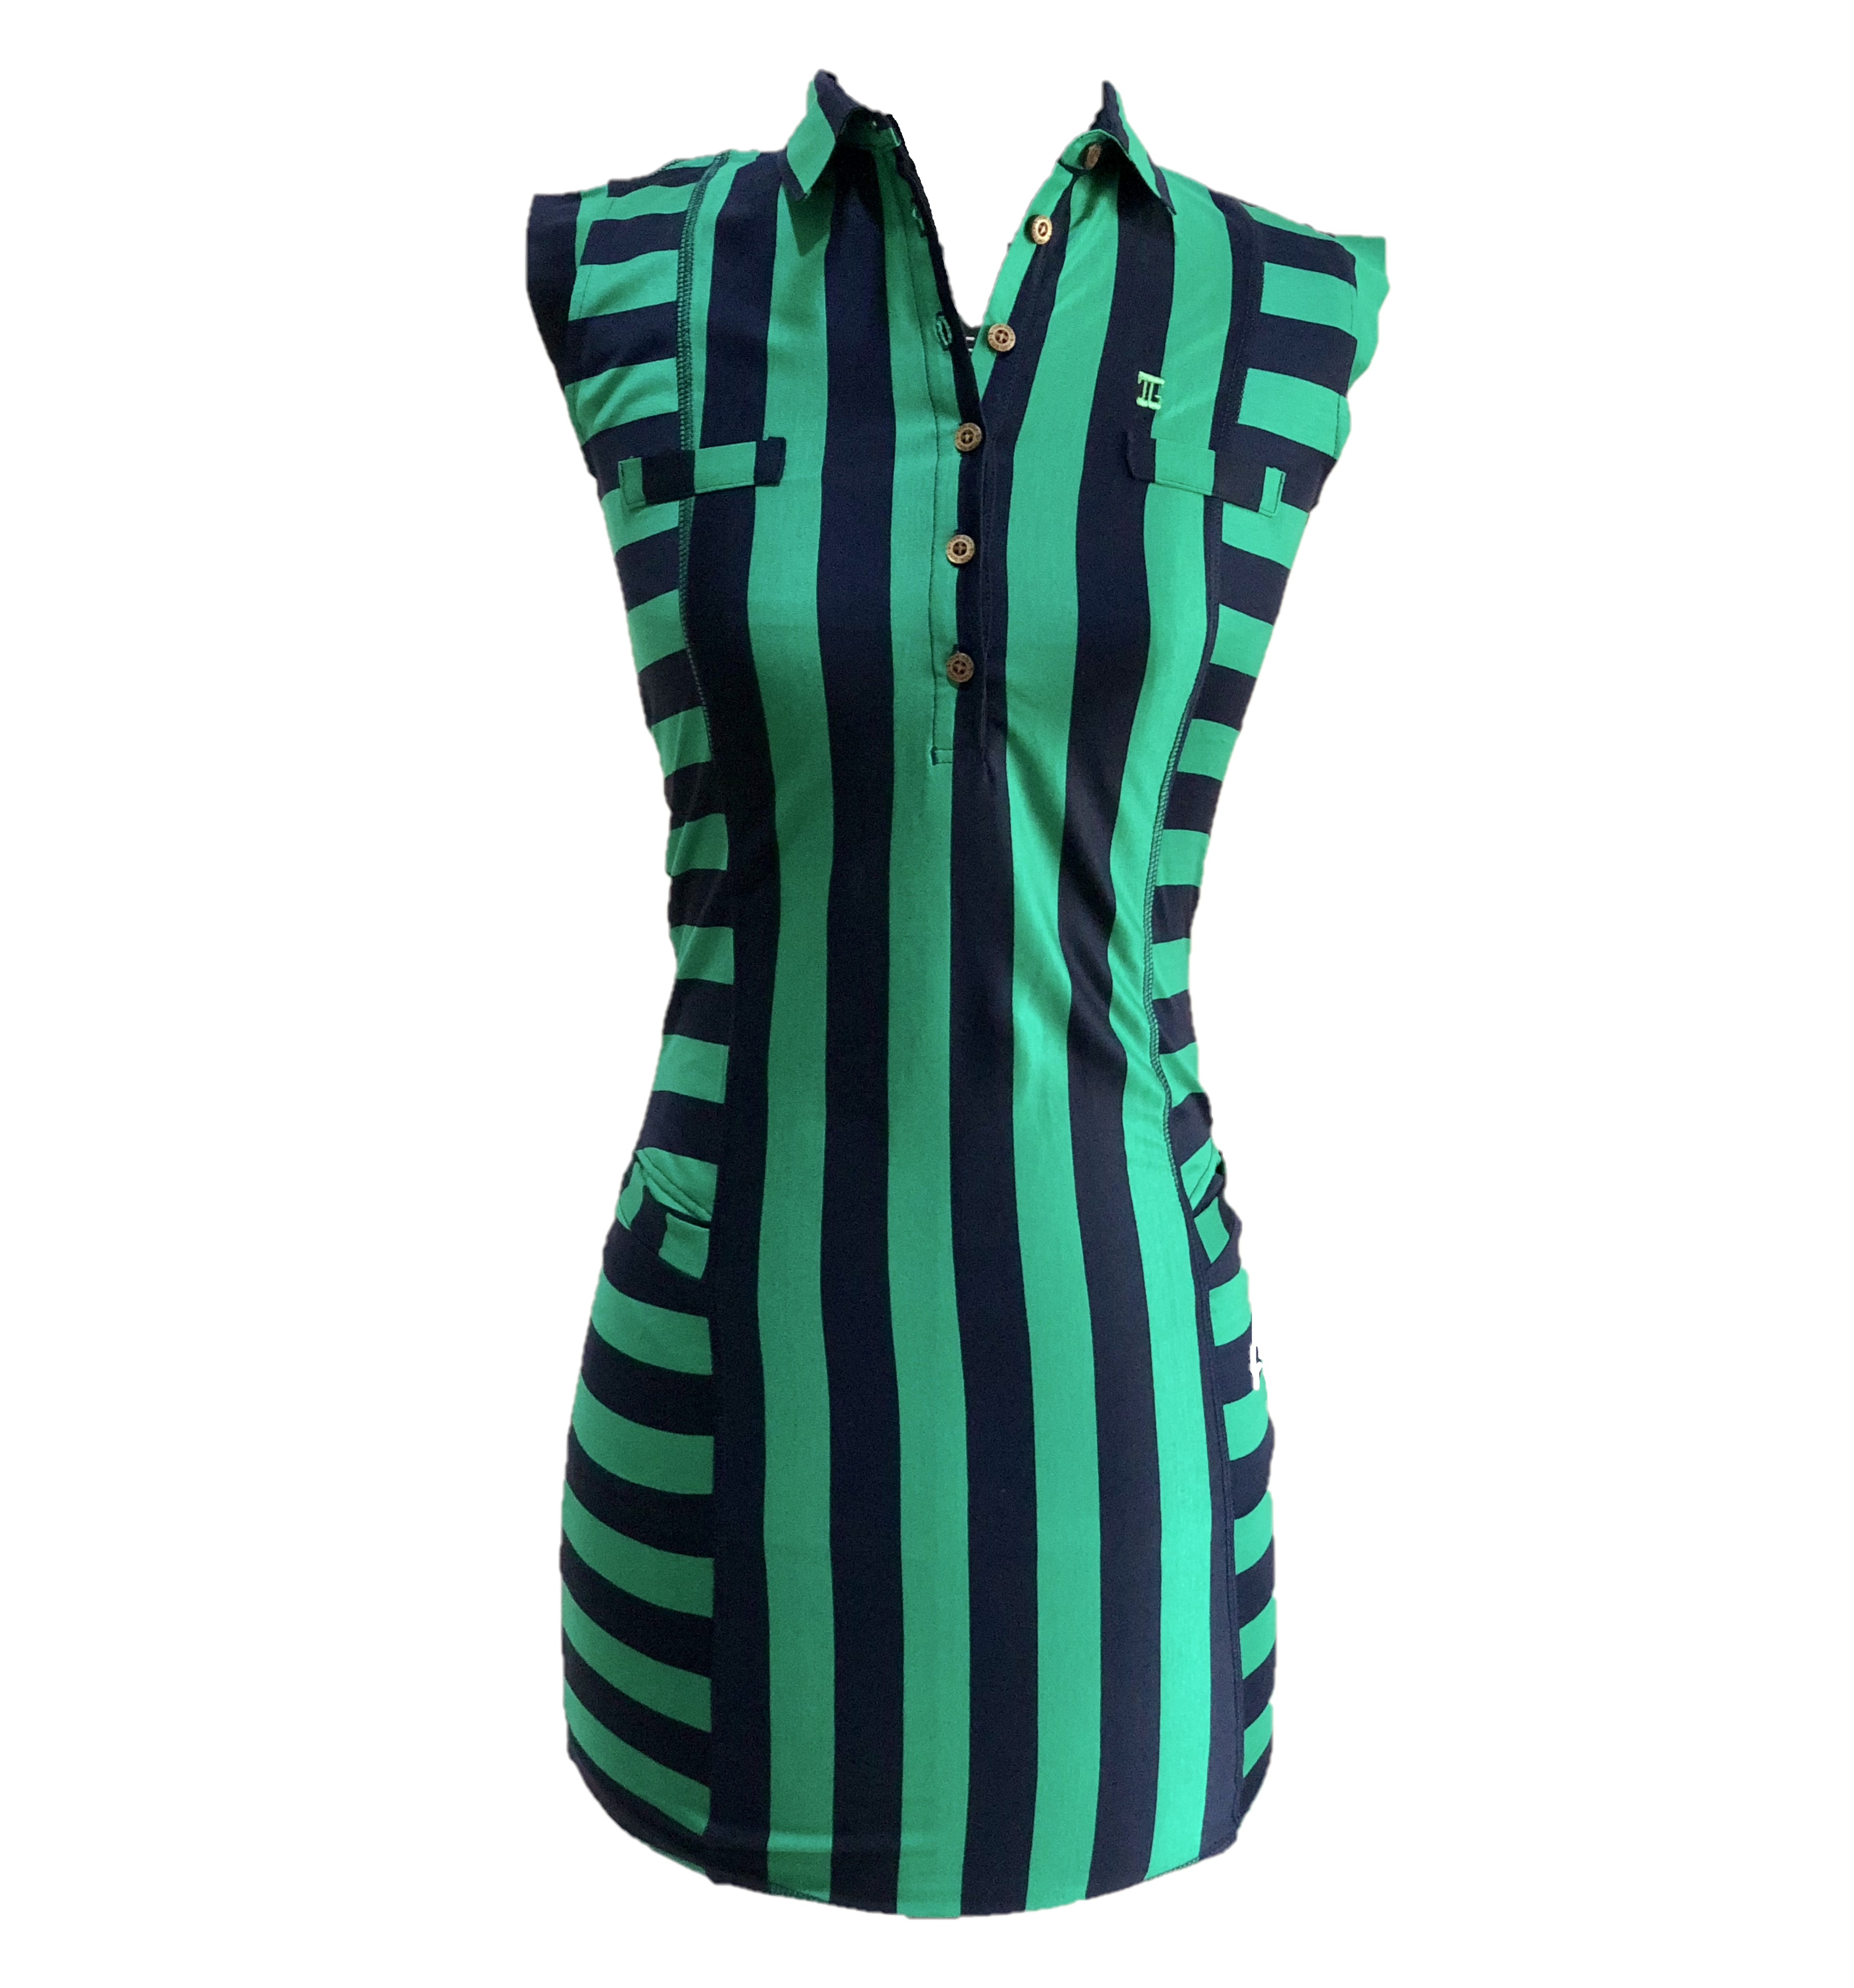 GD-014B    Golf Dress Ultra Short Sleeve Green With Navy Broad Vertical Front And Back Stripes Horizontal Sides